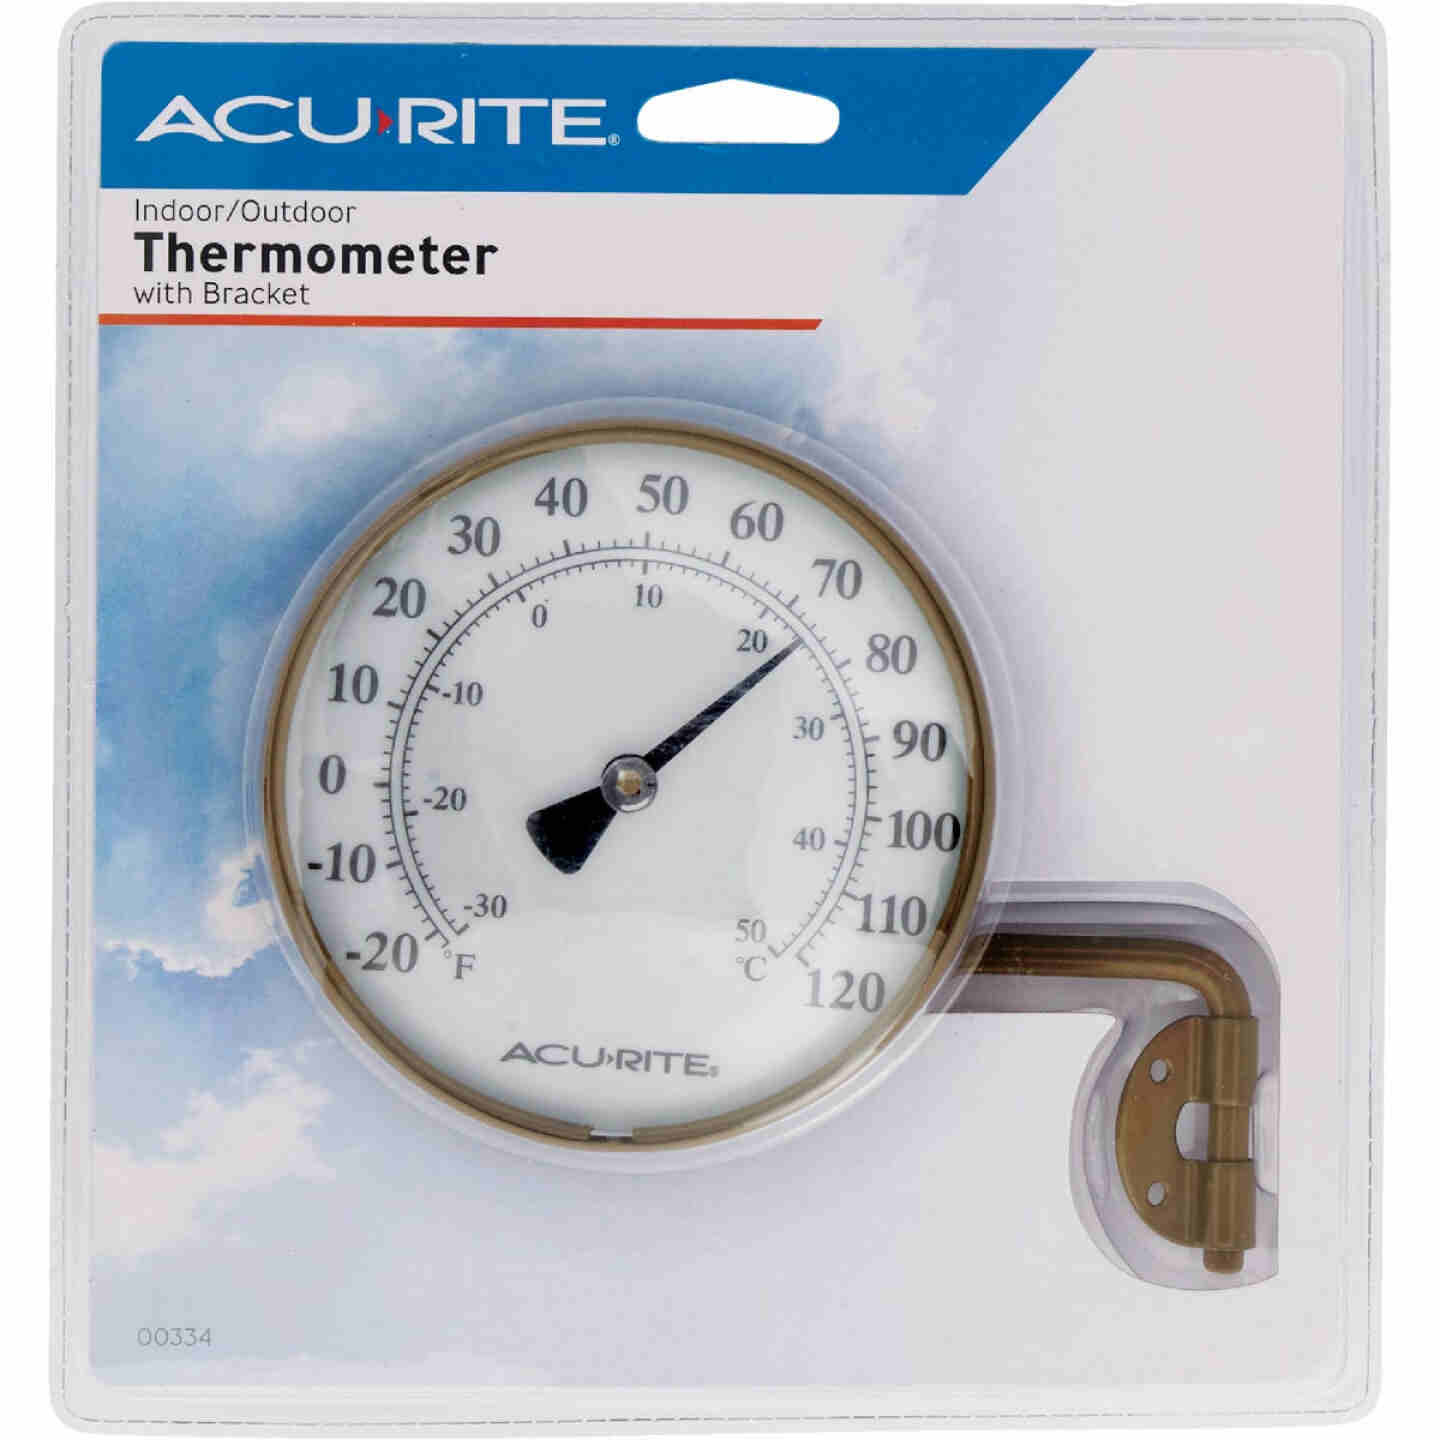 Acurite 4 In. Dia. Metal Dial Indoor & Outdoor Thermometer Image 2